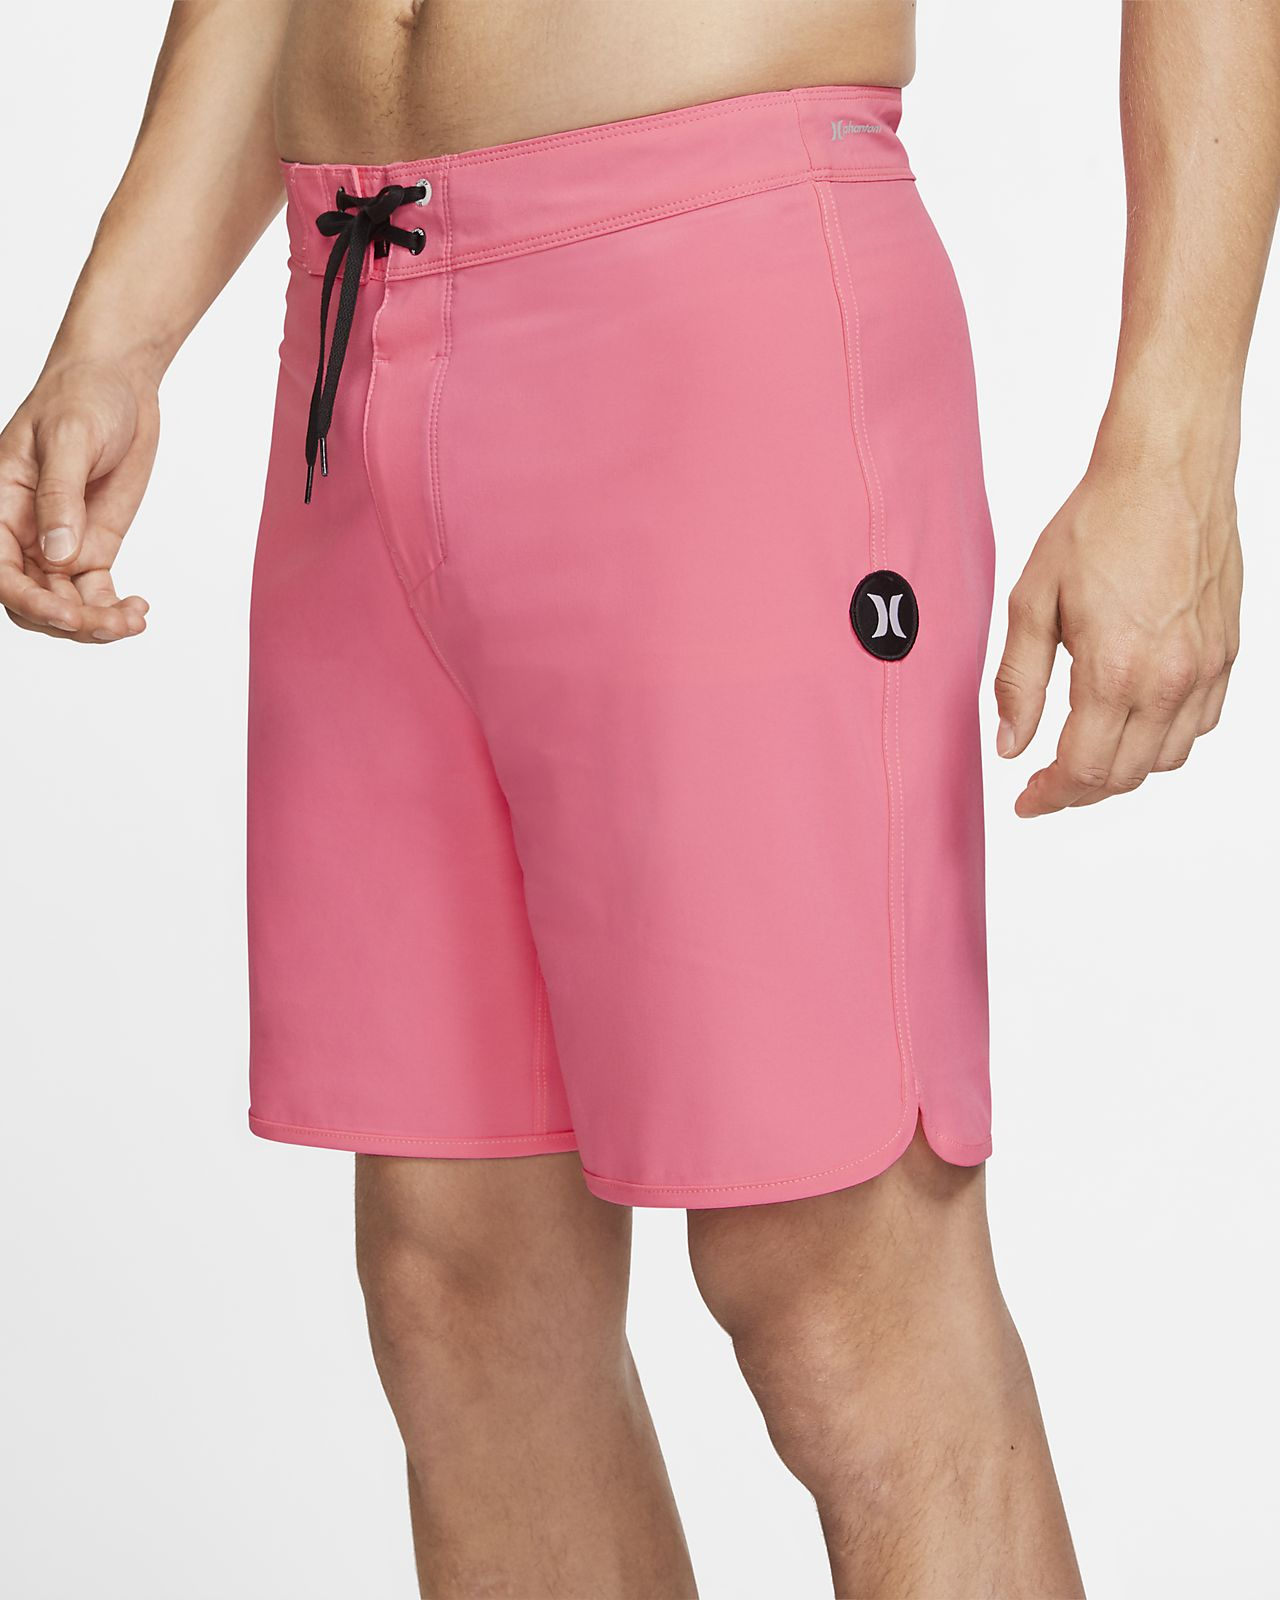 Hurley Phantom One And Only Boardshort de 46 cm - Home